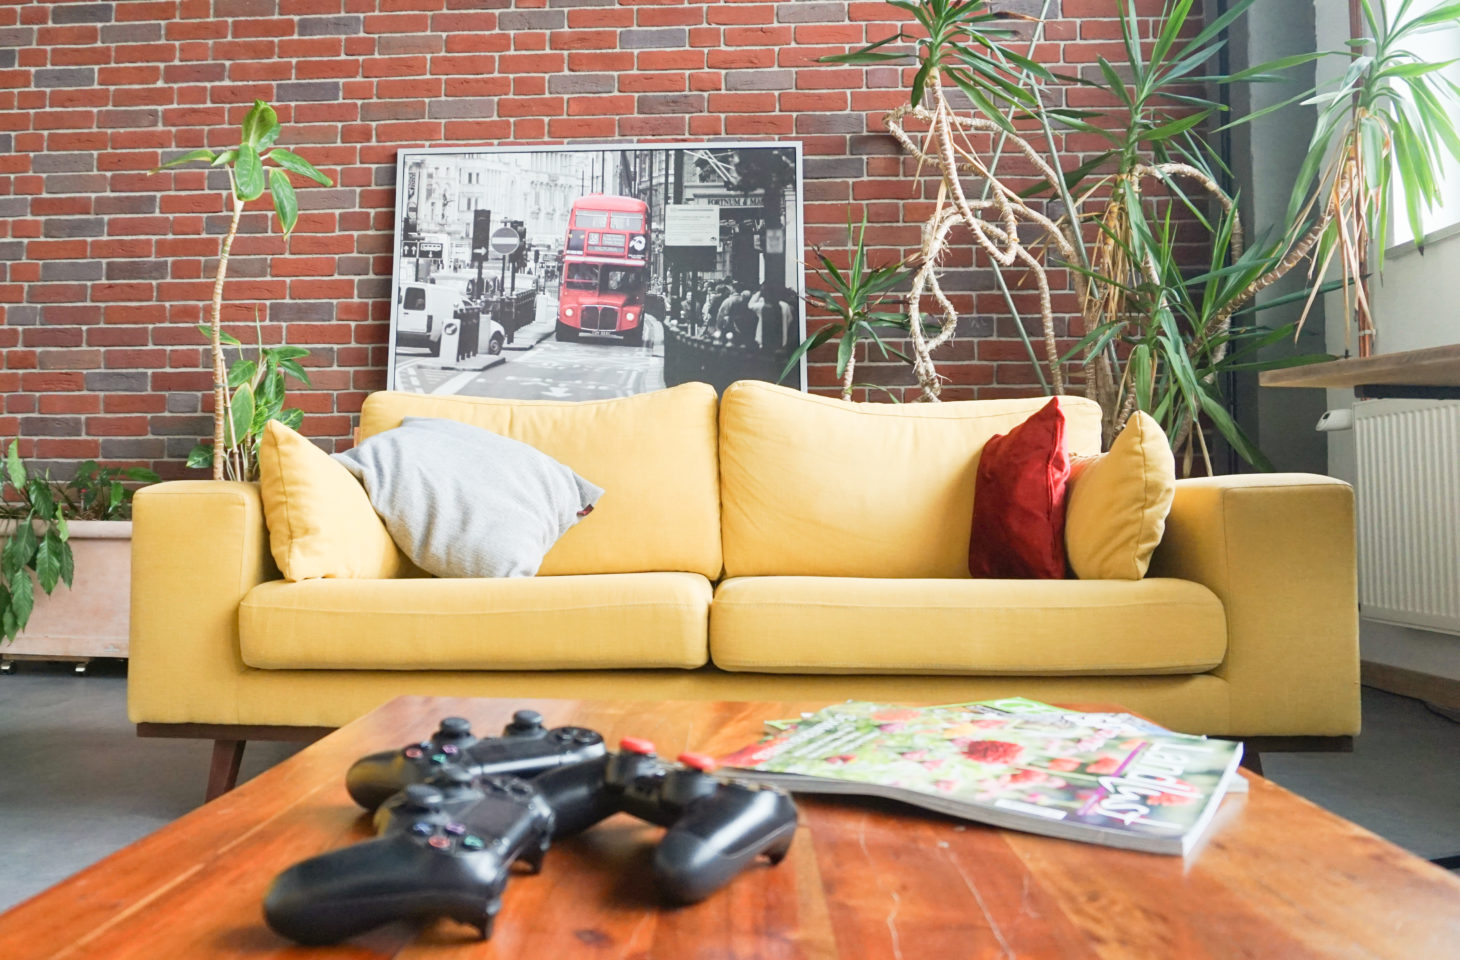 Image of a sofa corner, valantic branch Siegburg